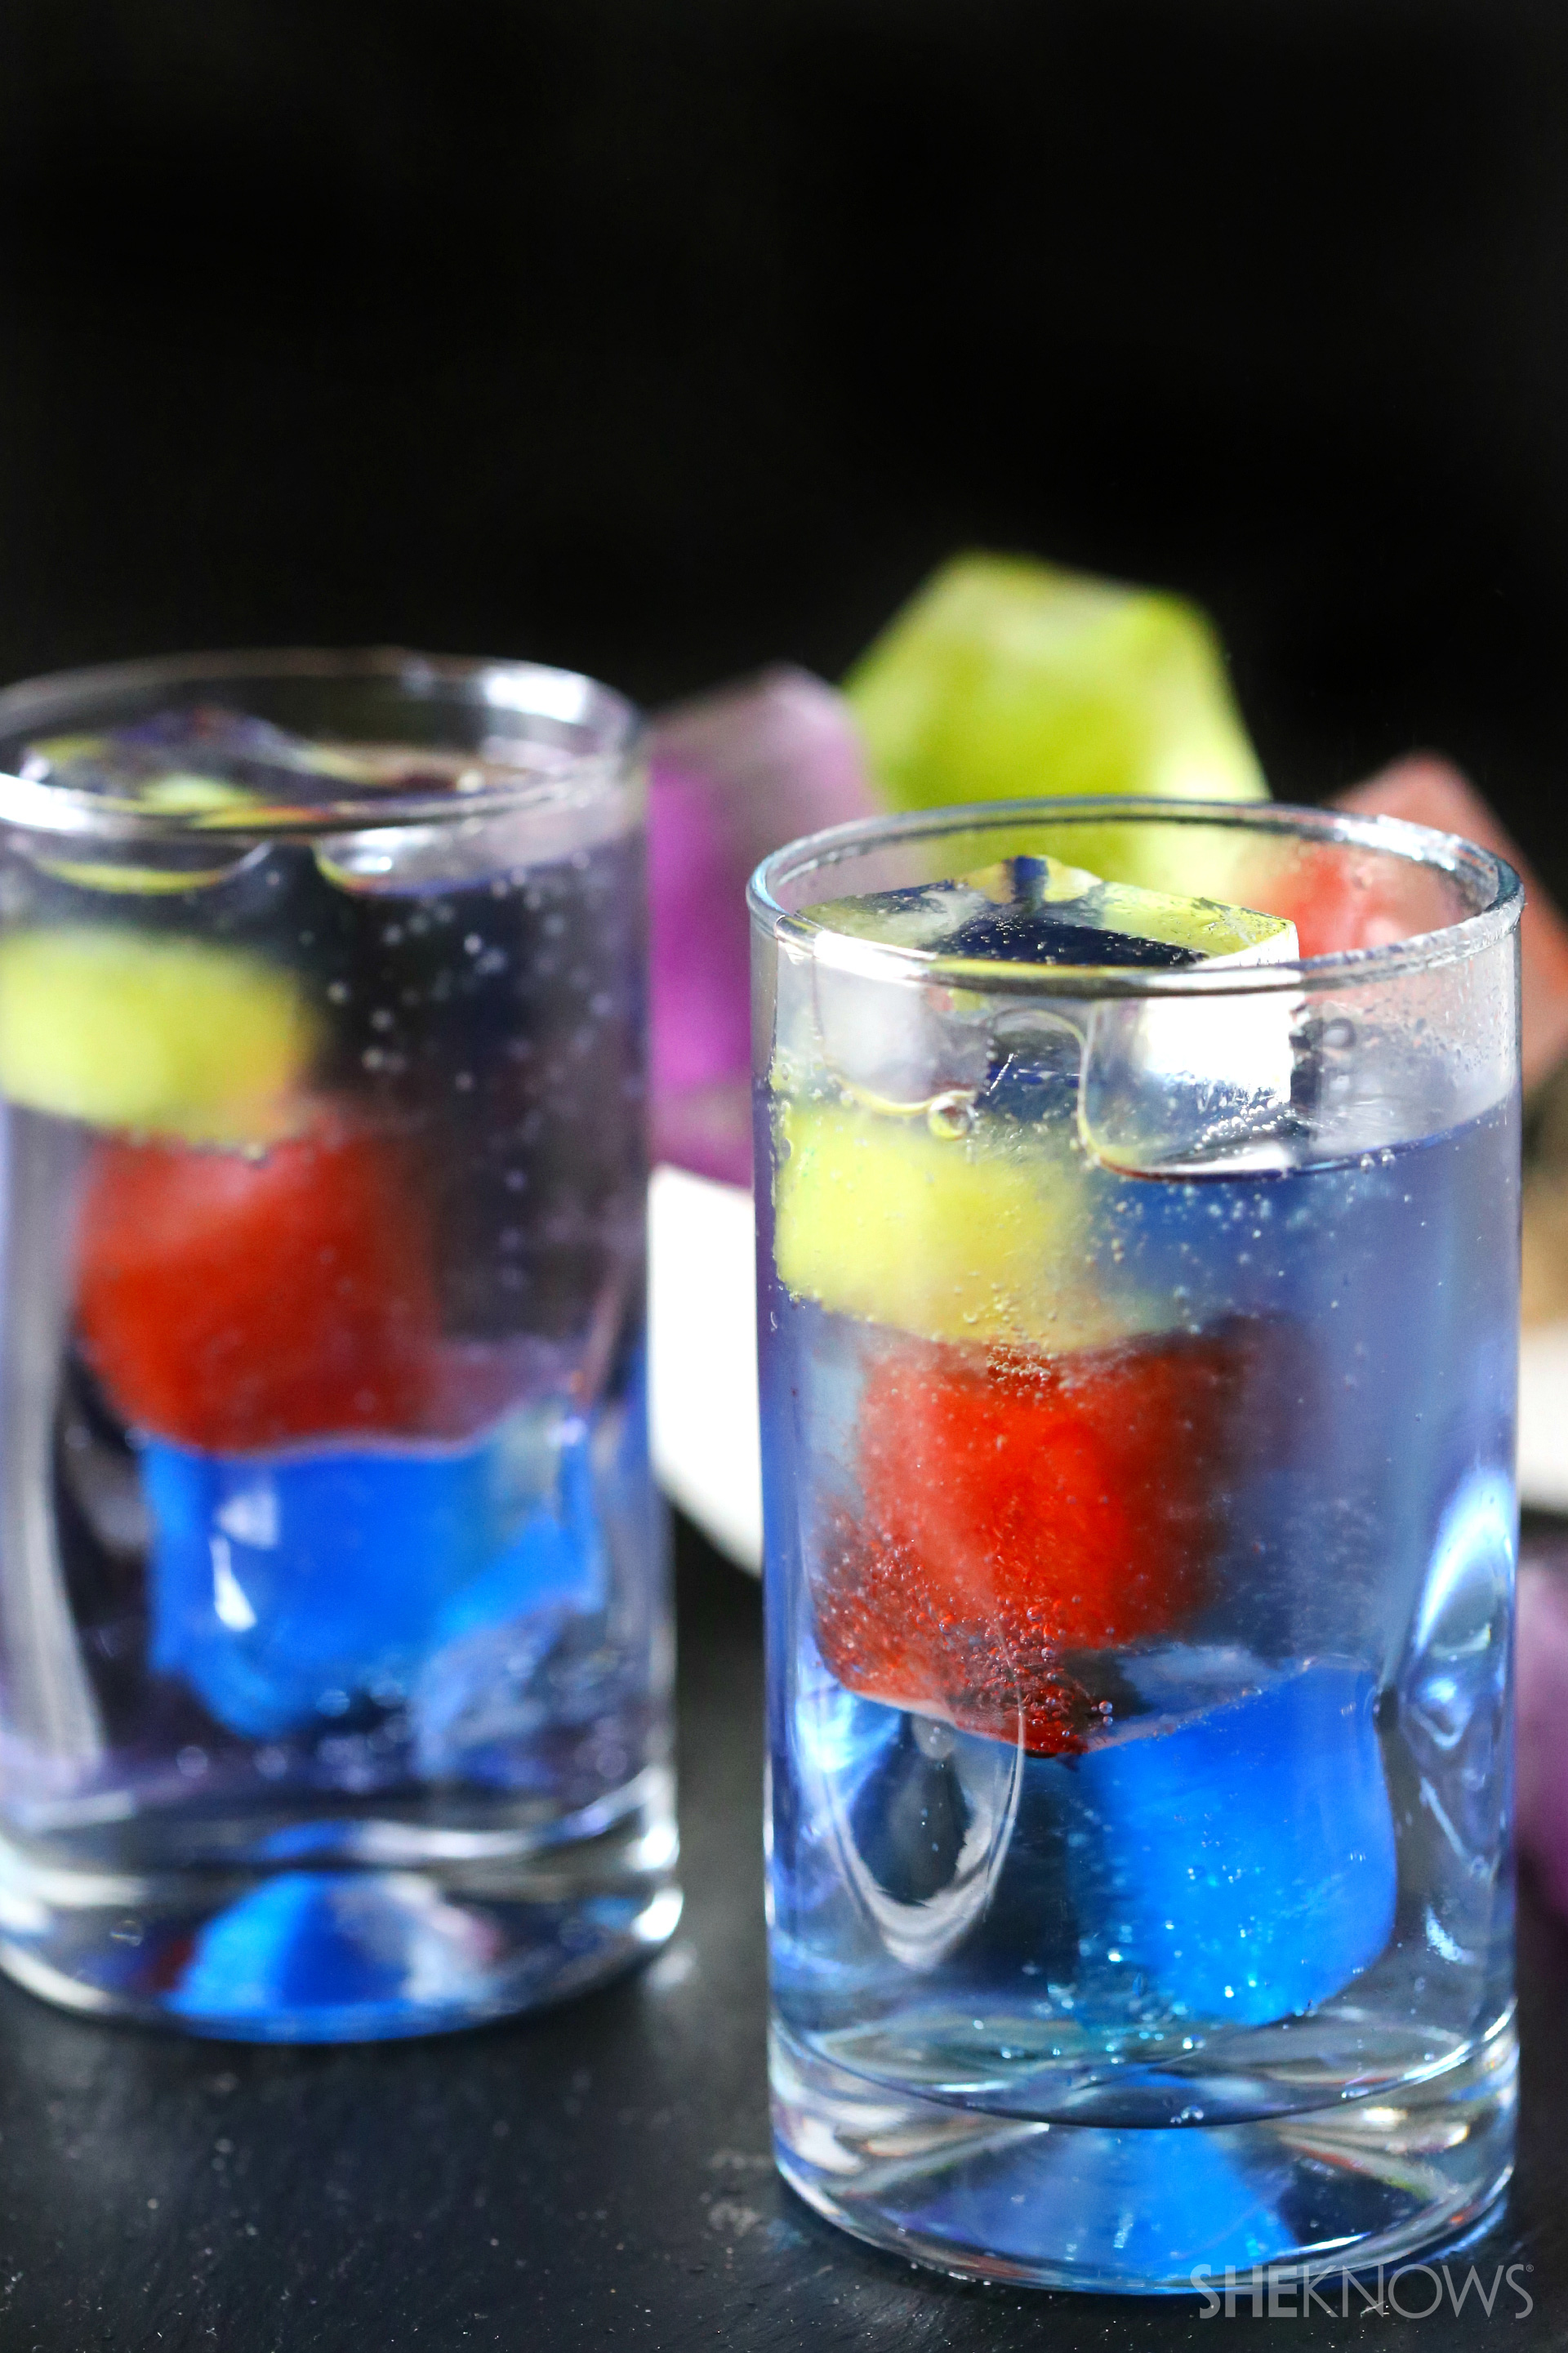 If you're going to drink Kool-Aid, there should definitely be some vodka involved